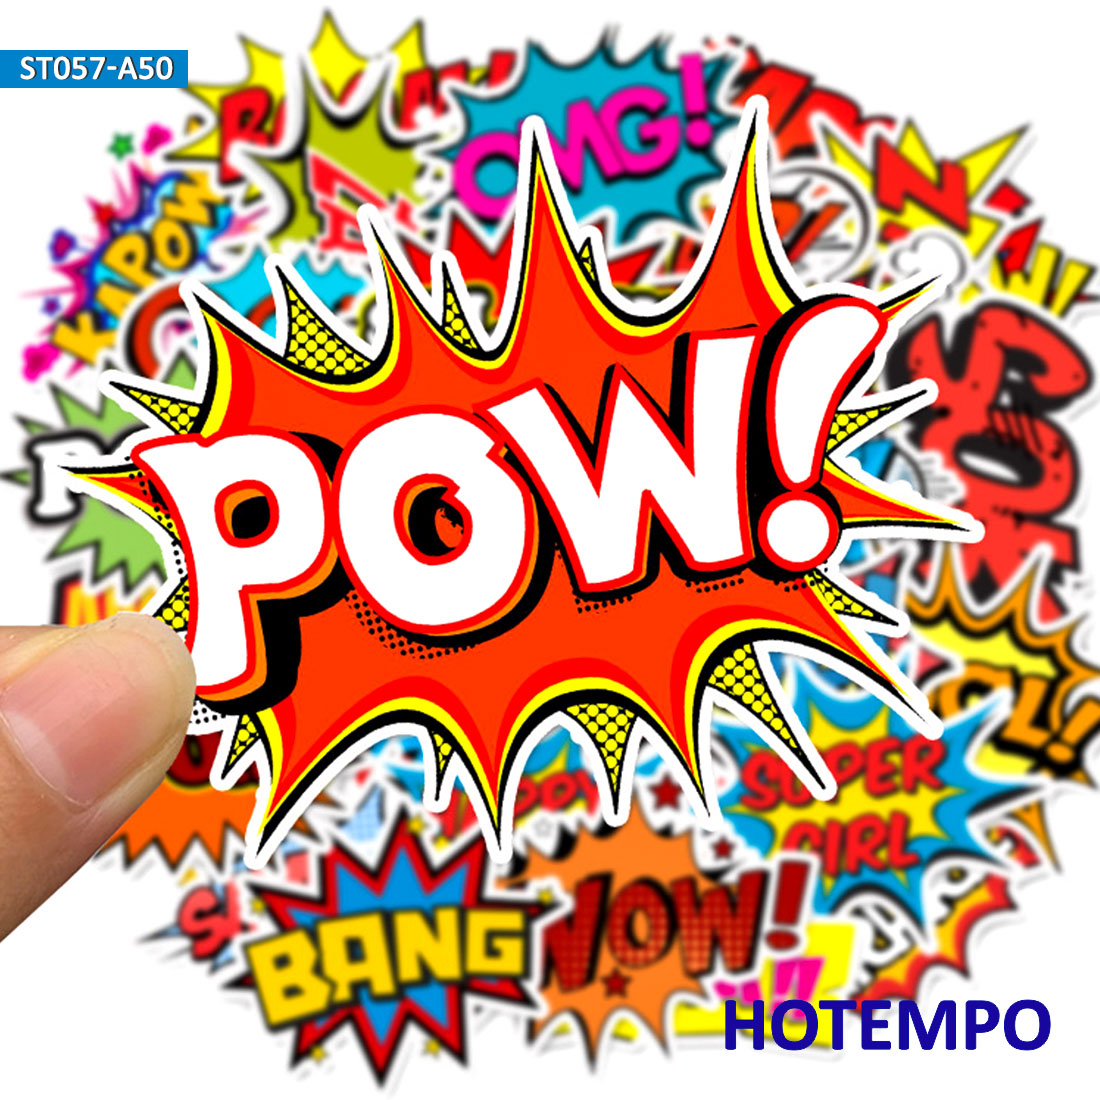 50pcs BAM POW Wow Boom Bang OMG Clouds From Explosion Stickers For Mobile Phone Laptop Luggage Guitar Case Skateboard Sticker